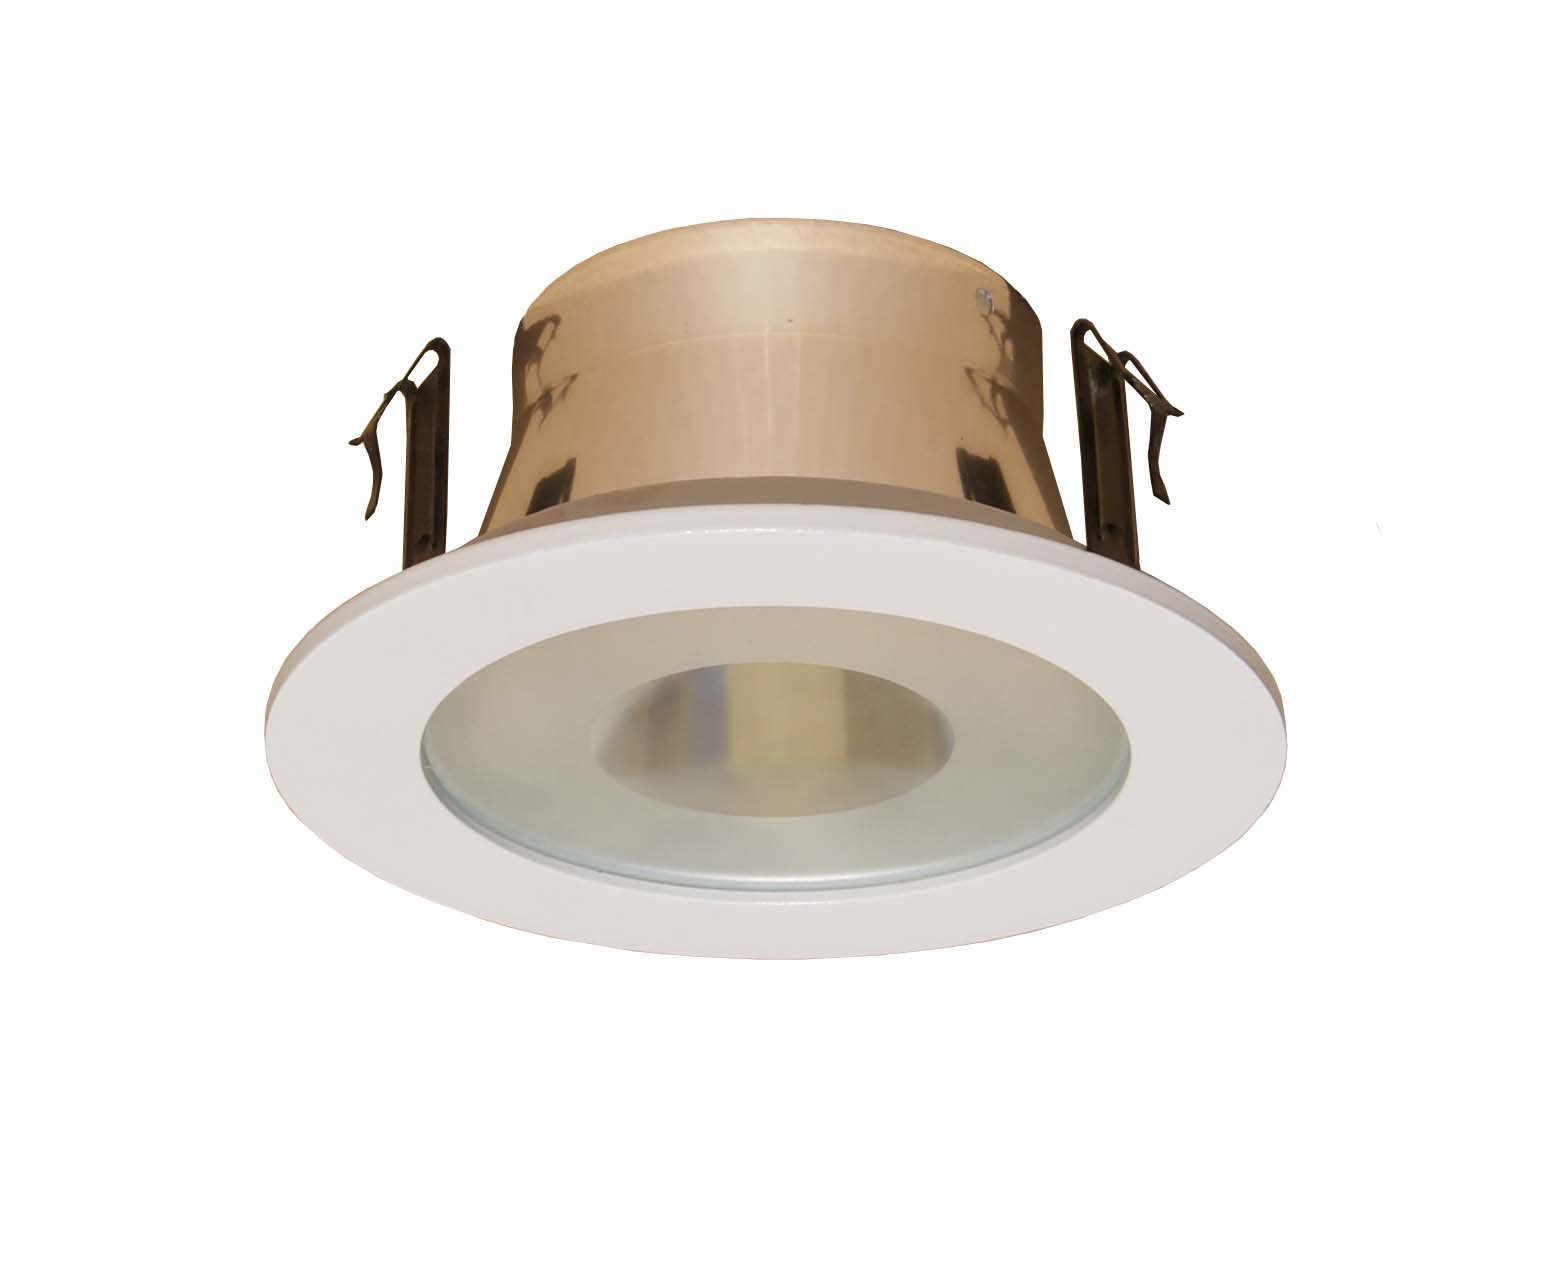 4 Inches Semi-frosted Lens Shower Trim for Line Voltage Recessed Light/lighting-white Fit Halo/juno